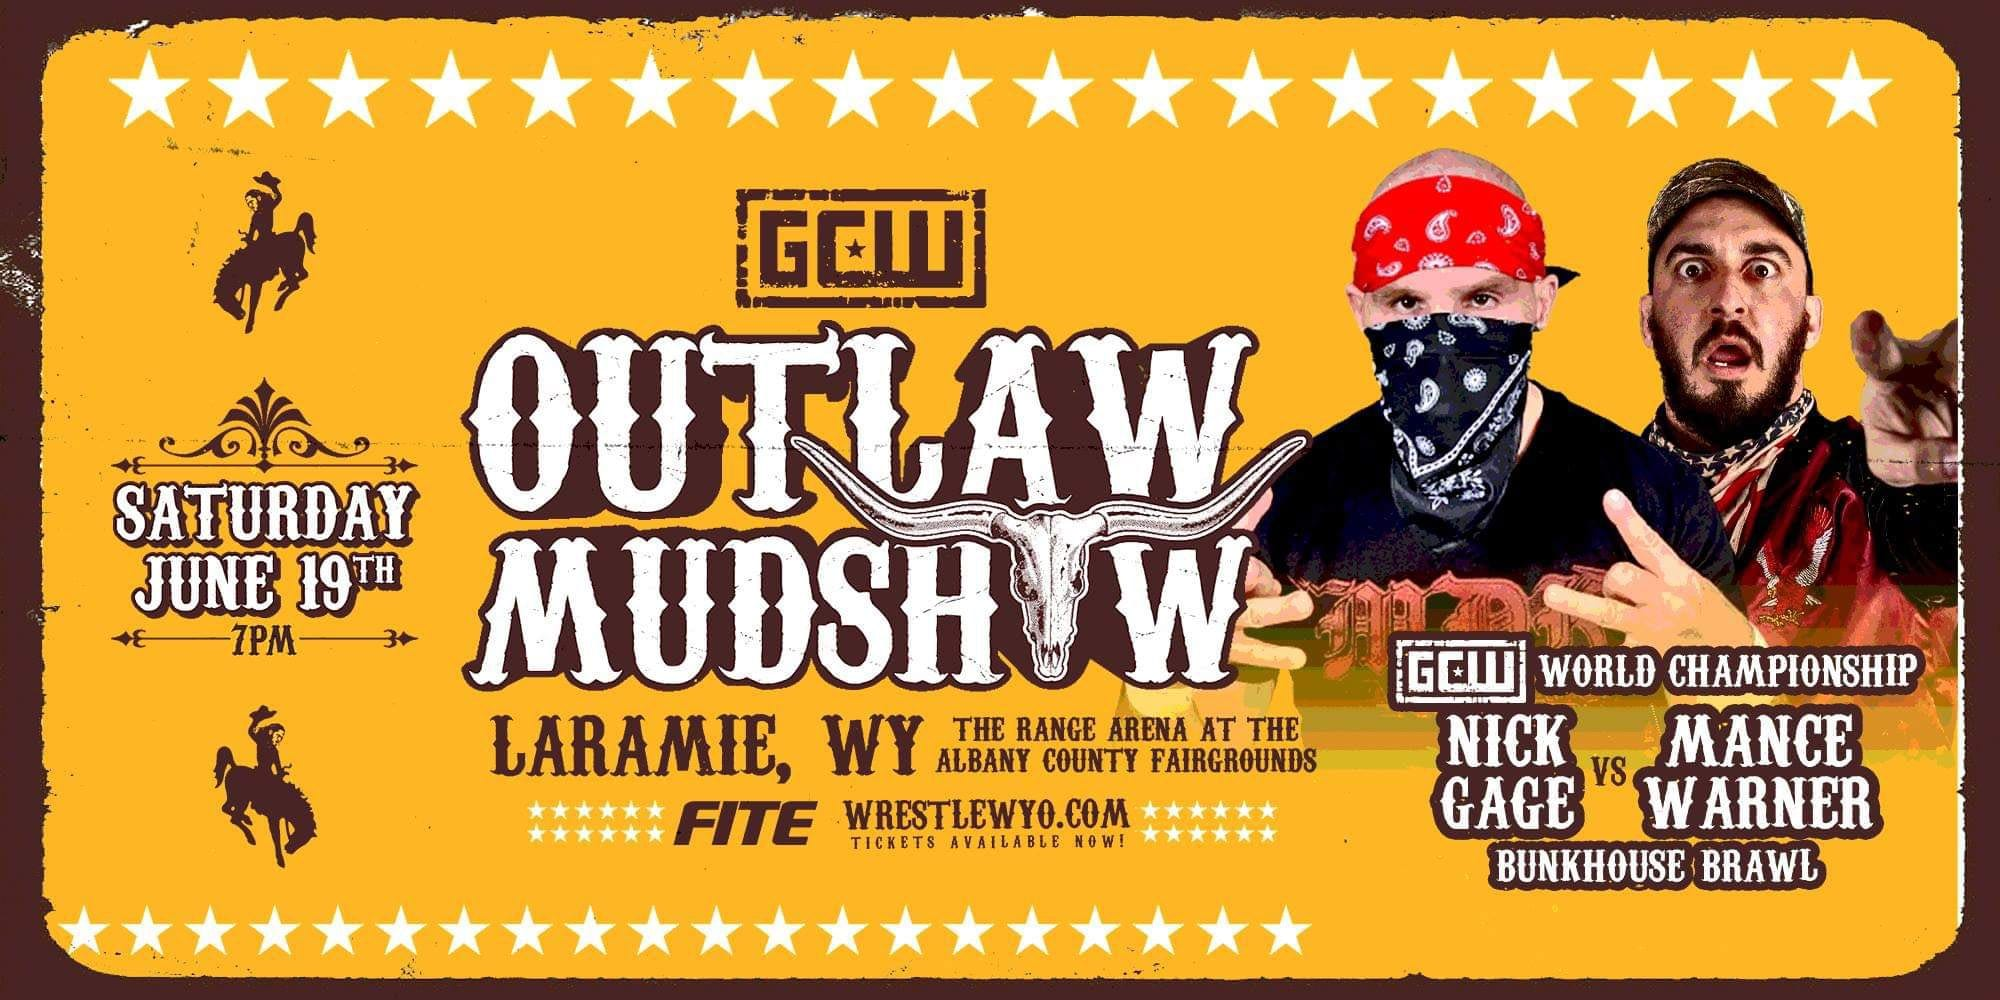 Police Show Up To GCW Outlaw Mudshow Event